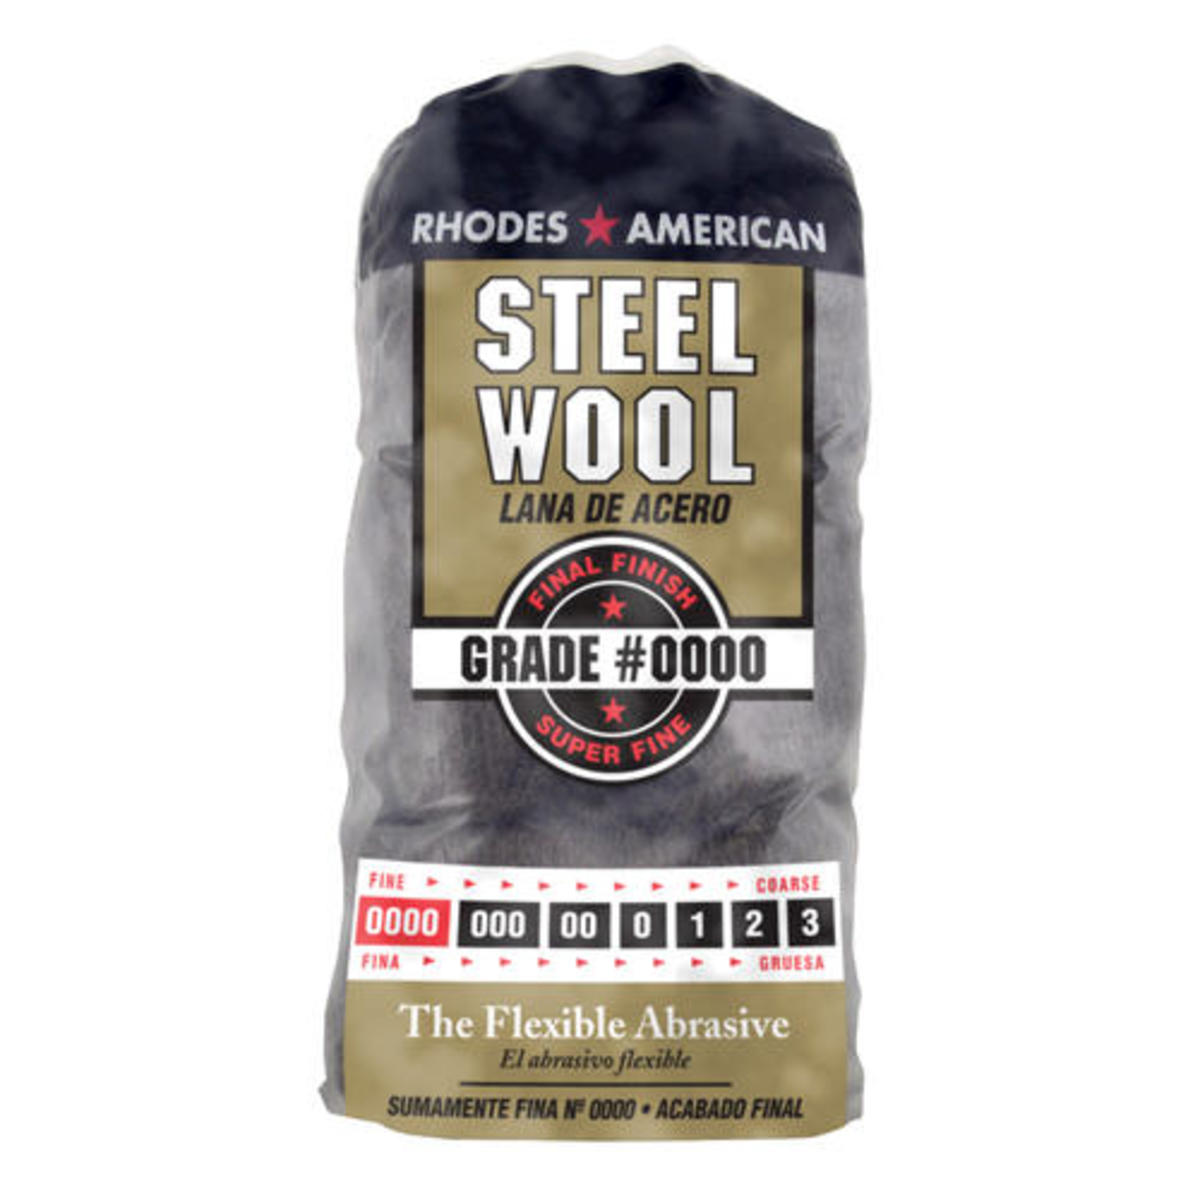 Steel wool is a versatile cleaning product that can be used in your household or garage.